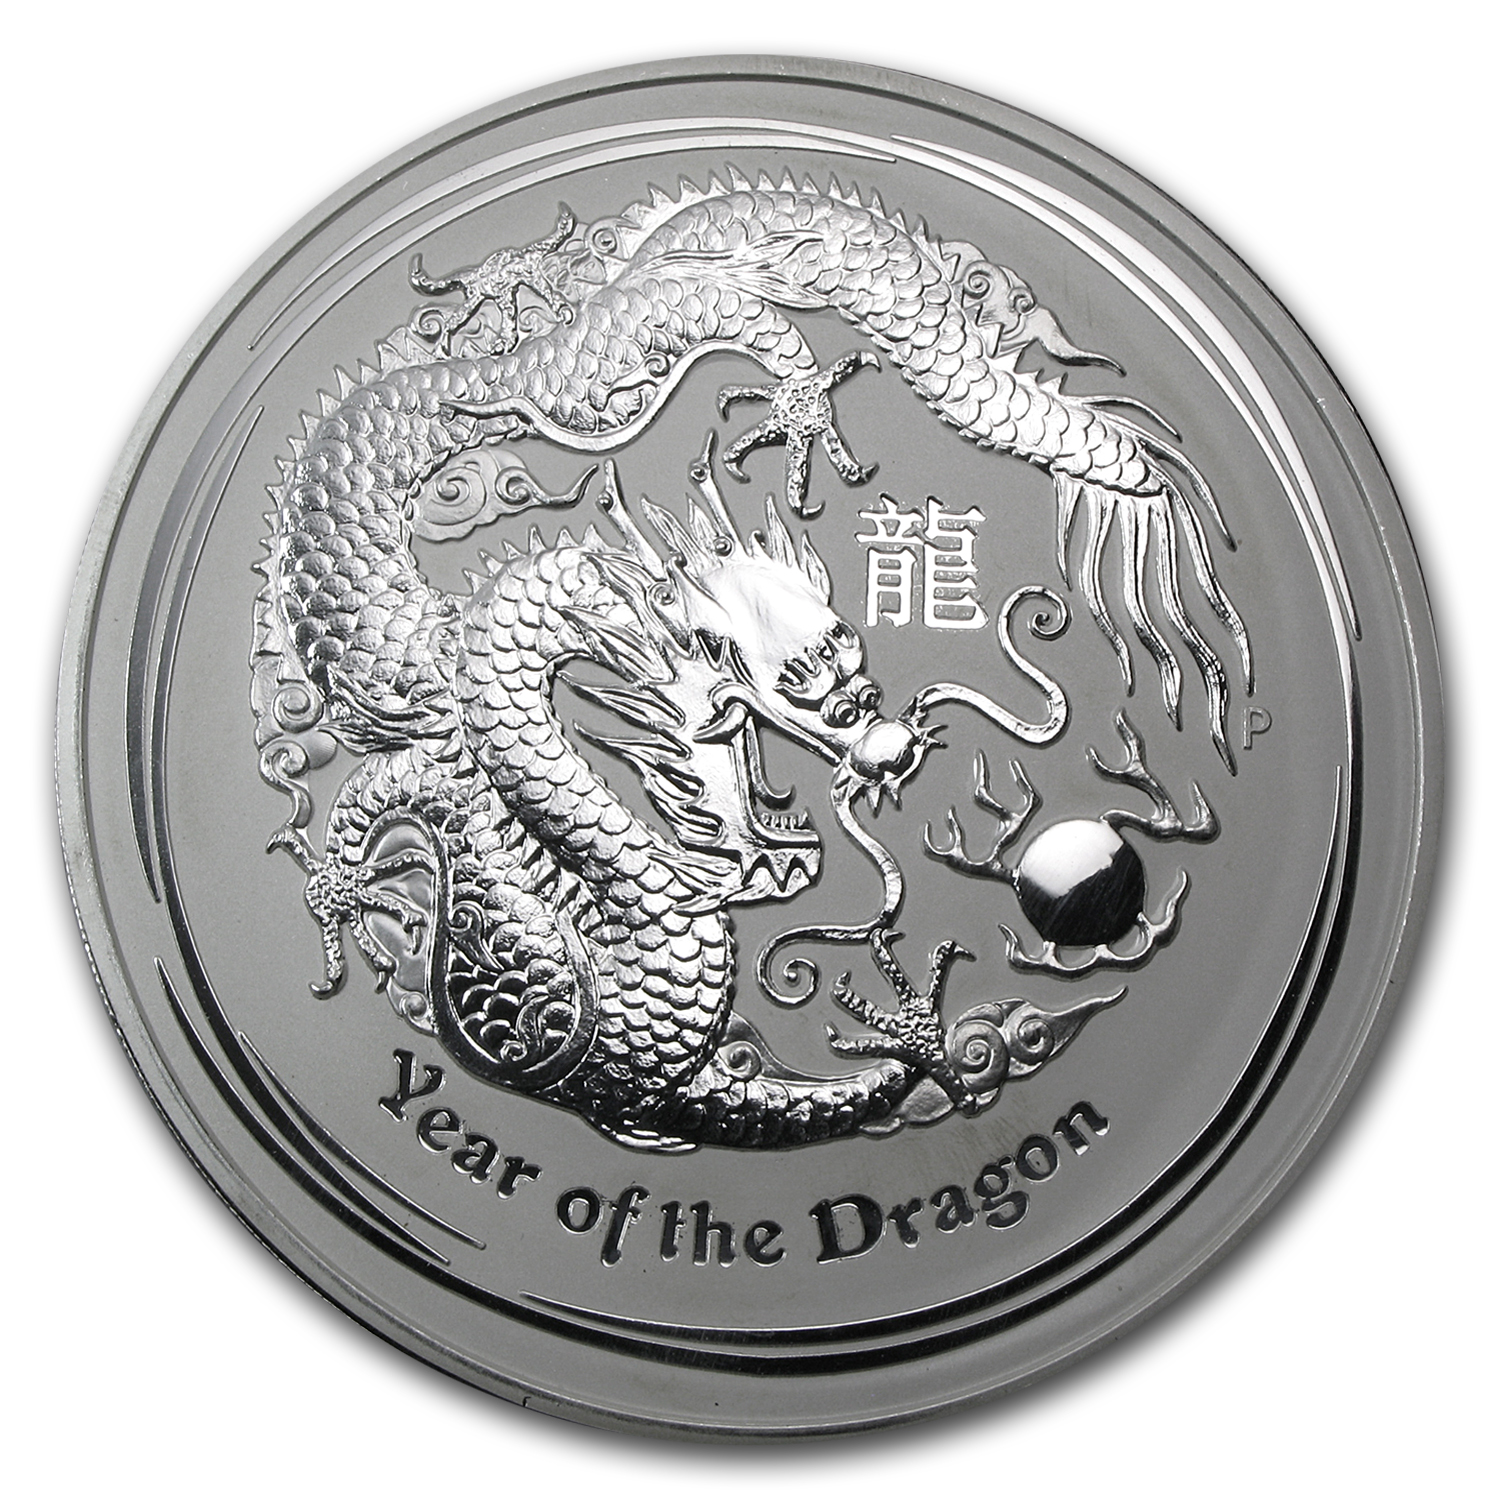 2012 Australia 1 kilo Silver Year of the Dragon BU